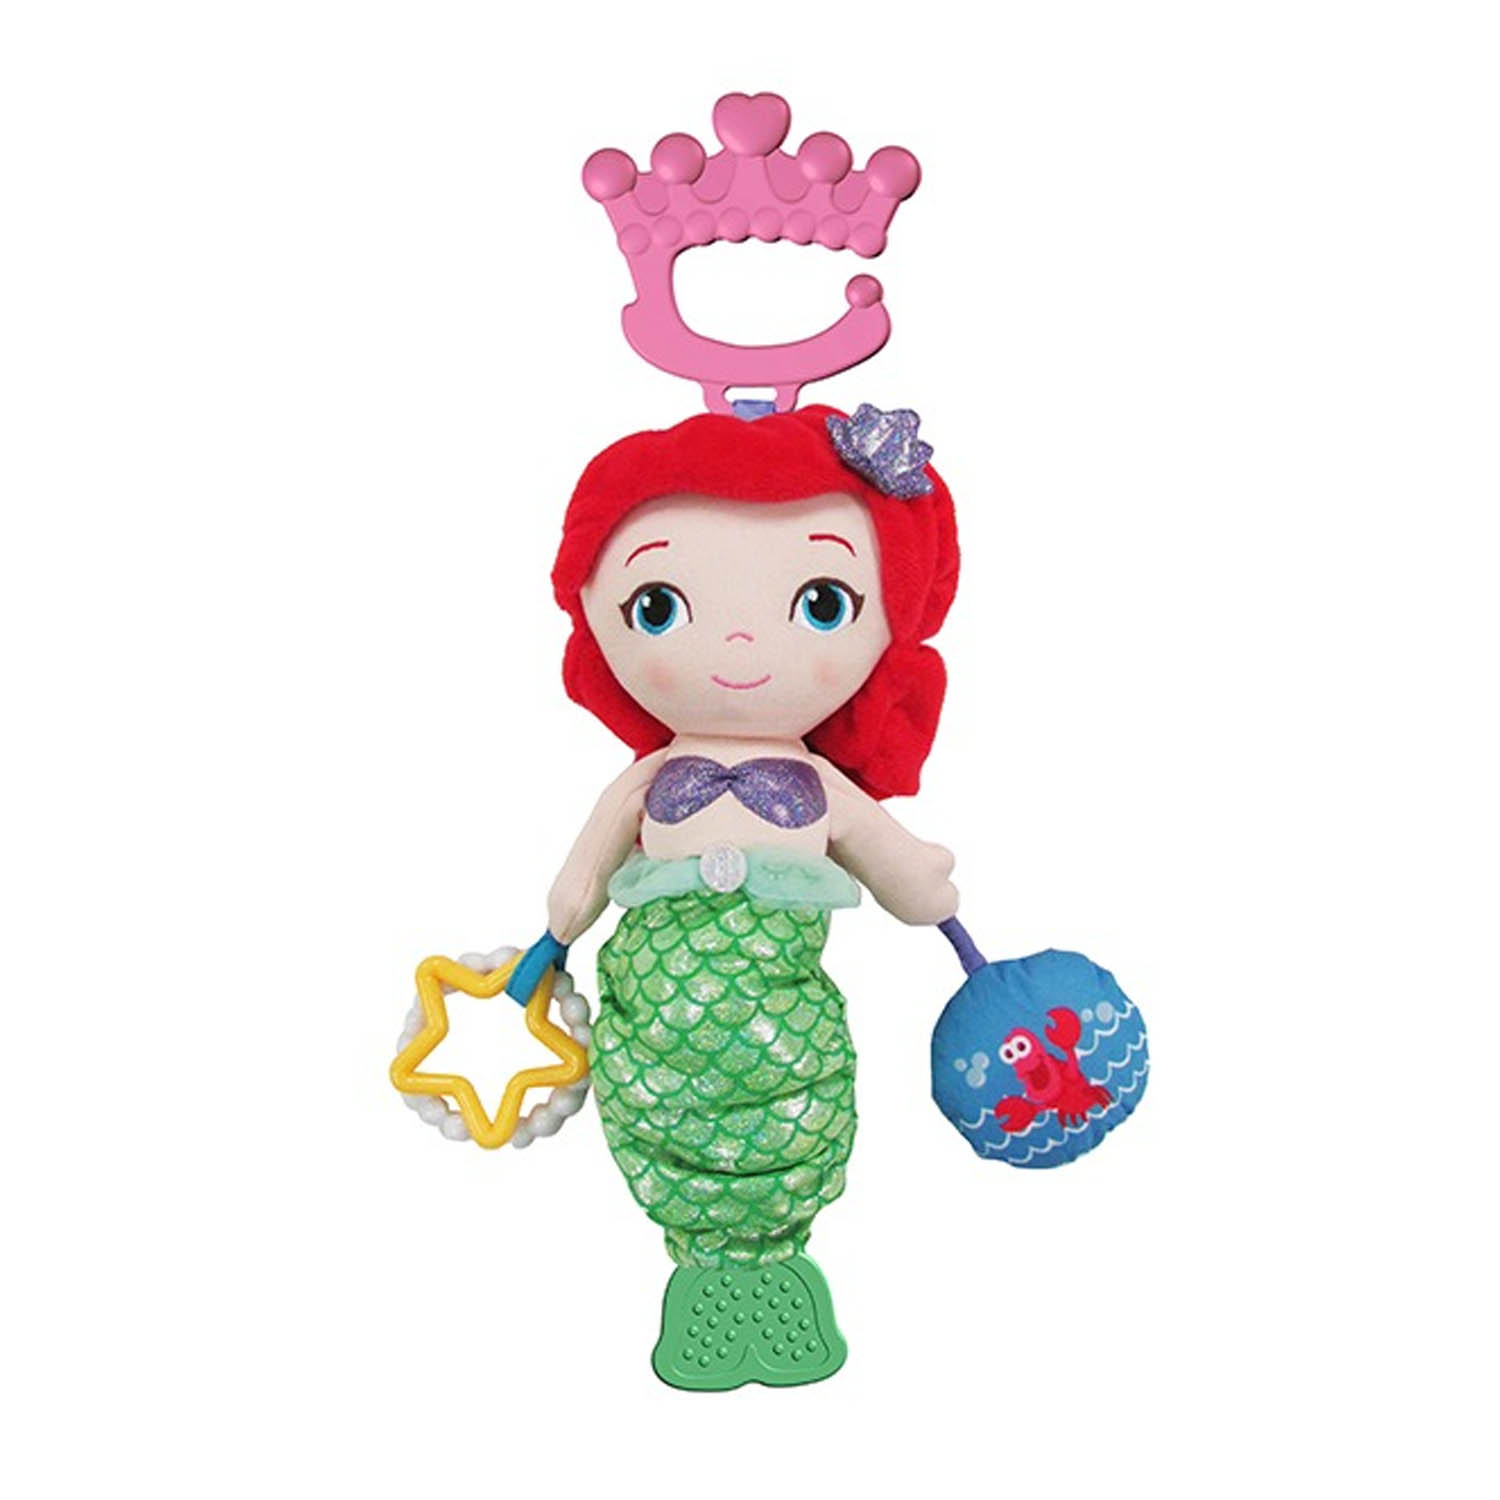 Disney Baby The Little Mermaid Ariel Plush Baby Activity Toy